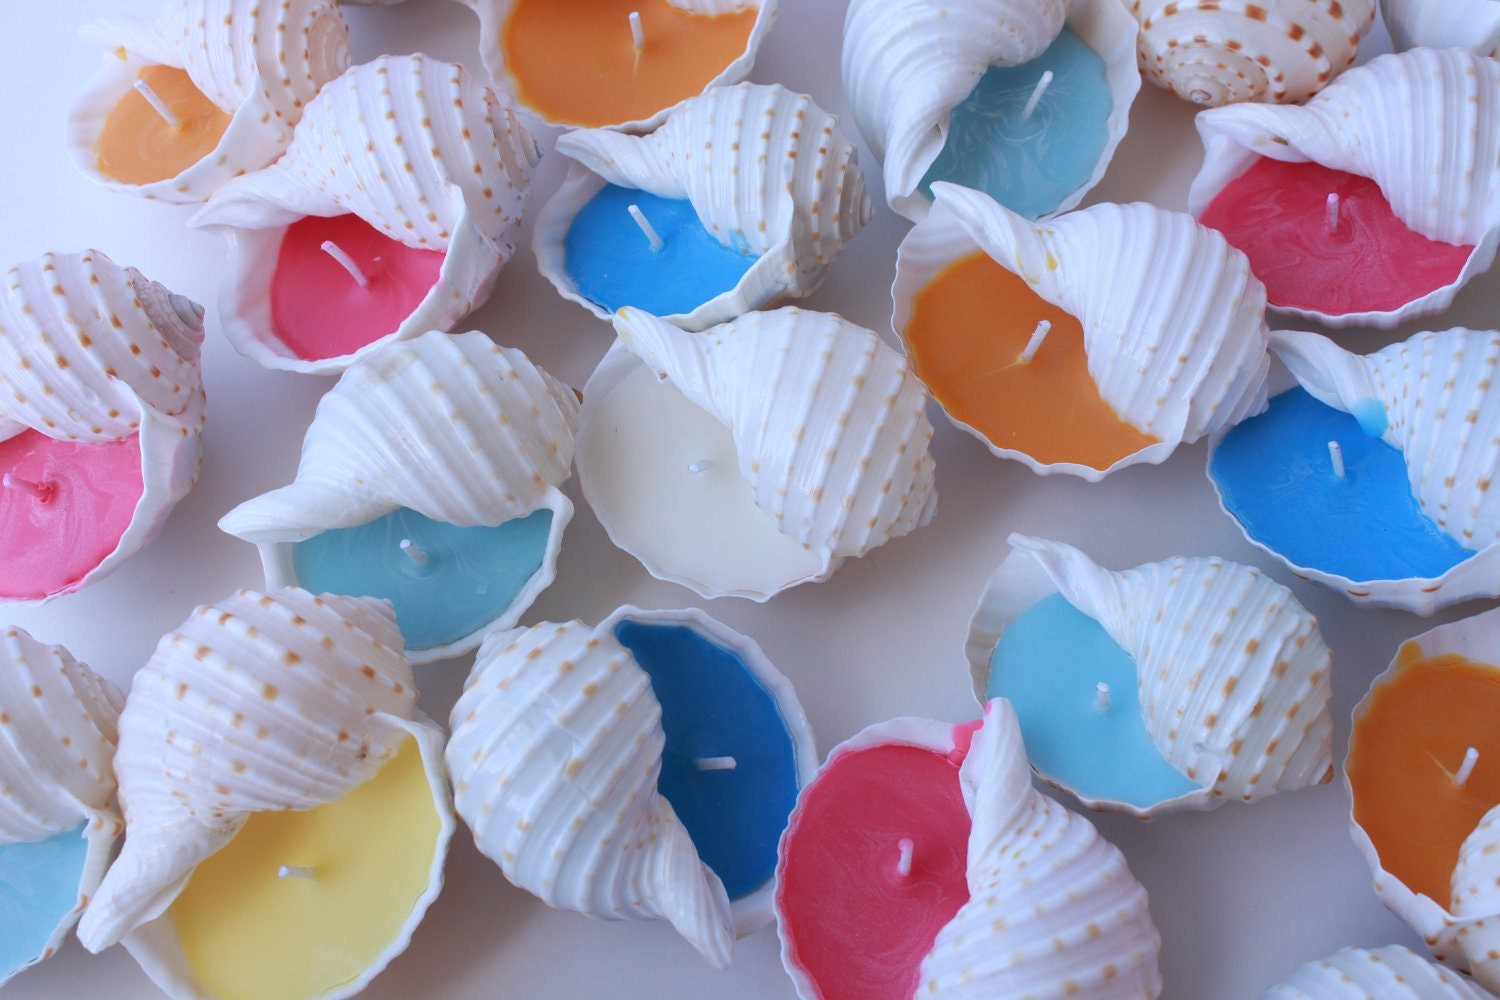 Wedding Gifts And Favors: Beach Wedding Favor-Small Shell Candle